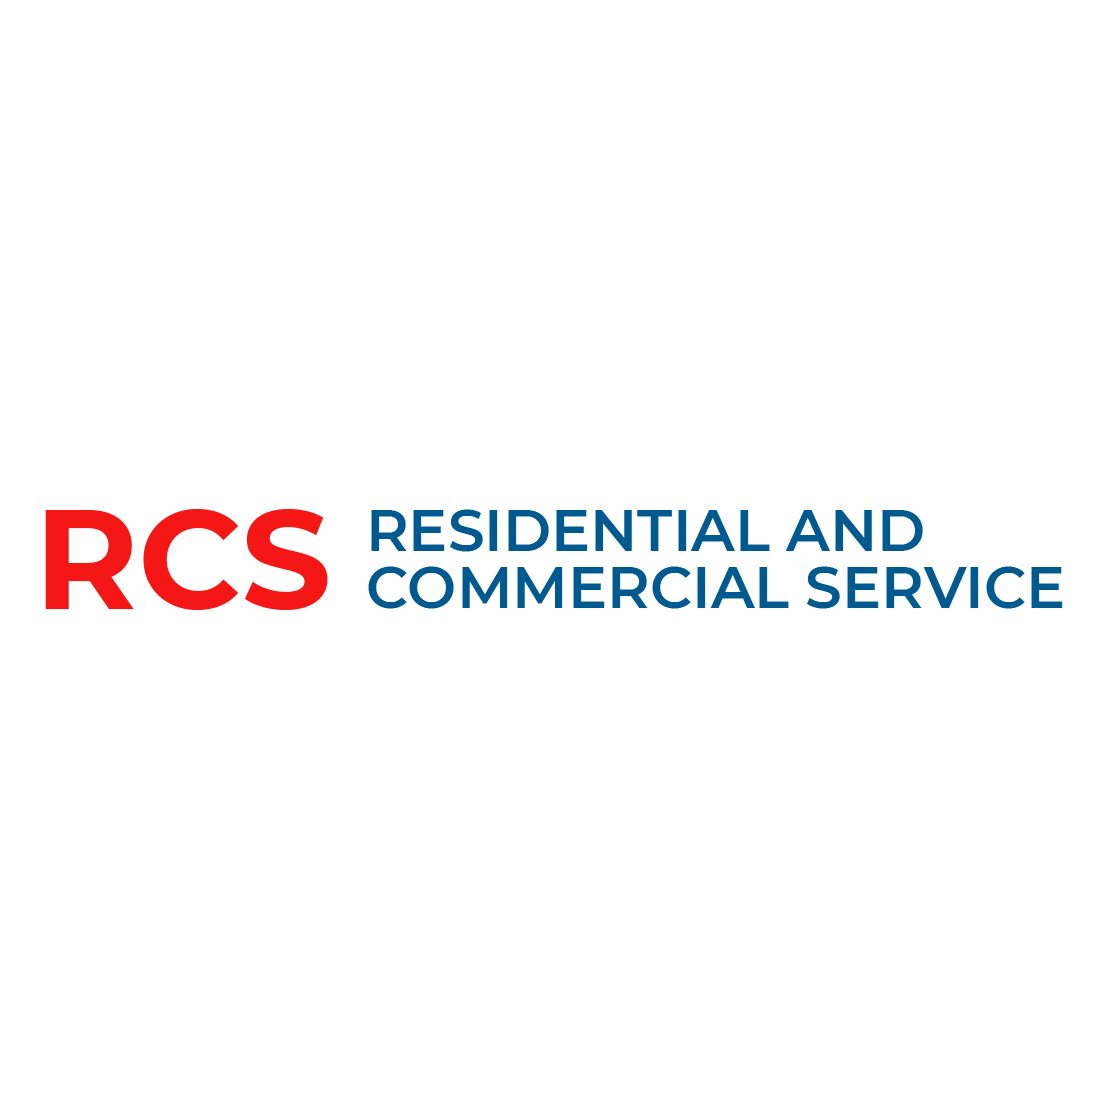 RCS Residential and Commercial Service